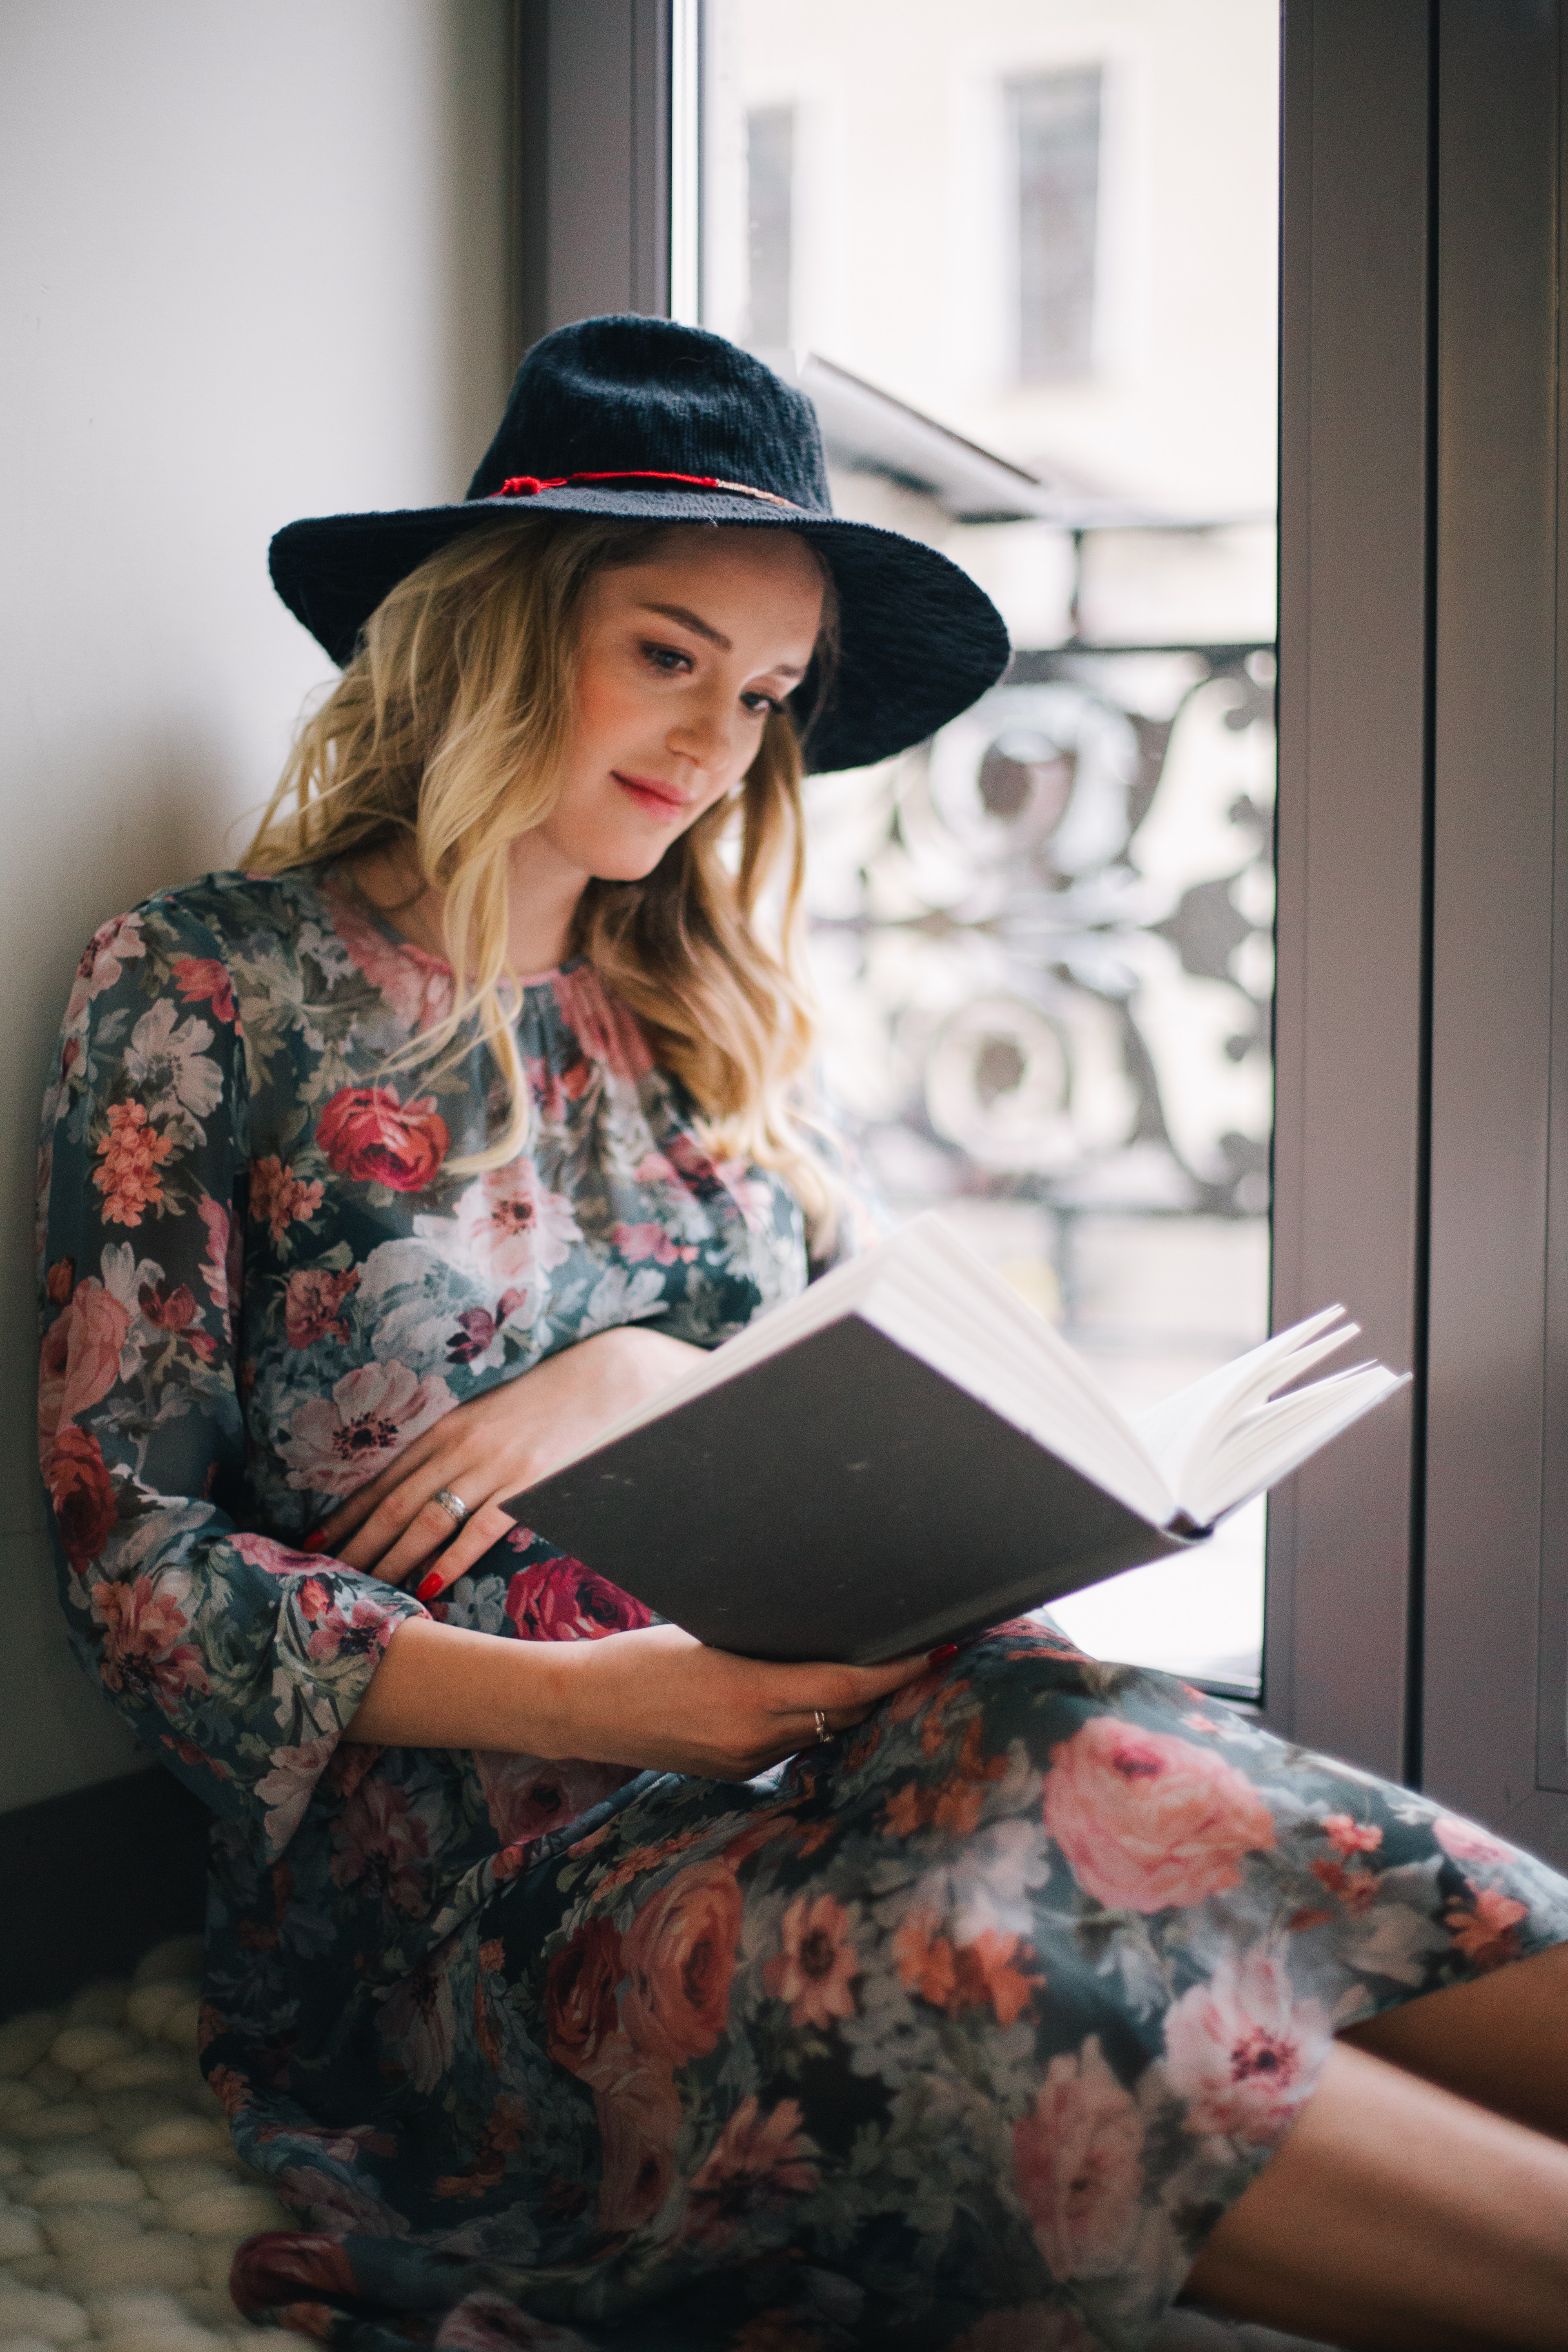 Pregnant woman wearing green, red, and white floral dress reading a book near window photo